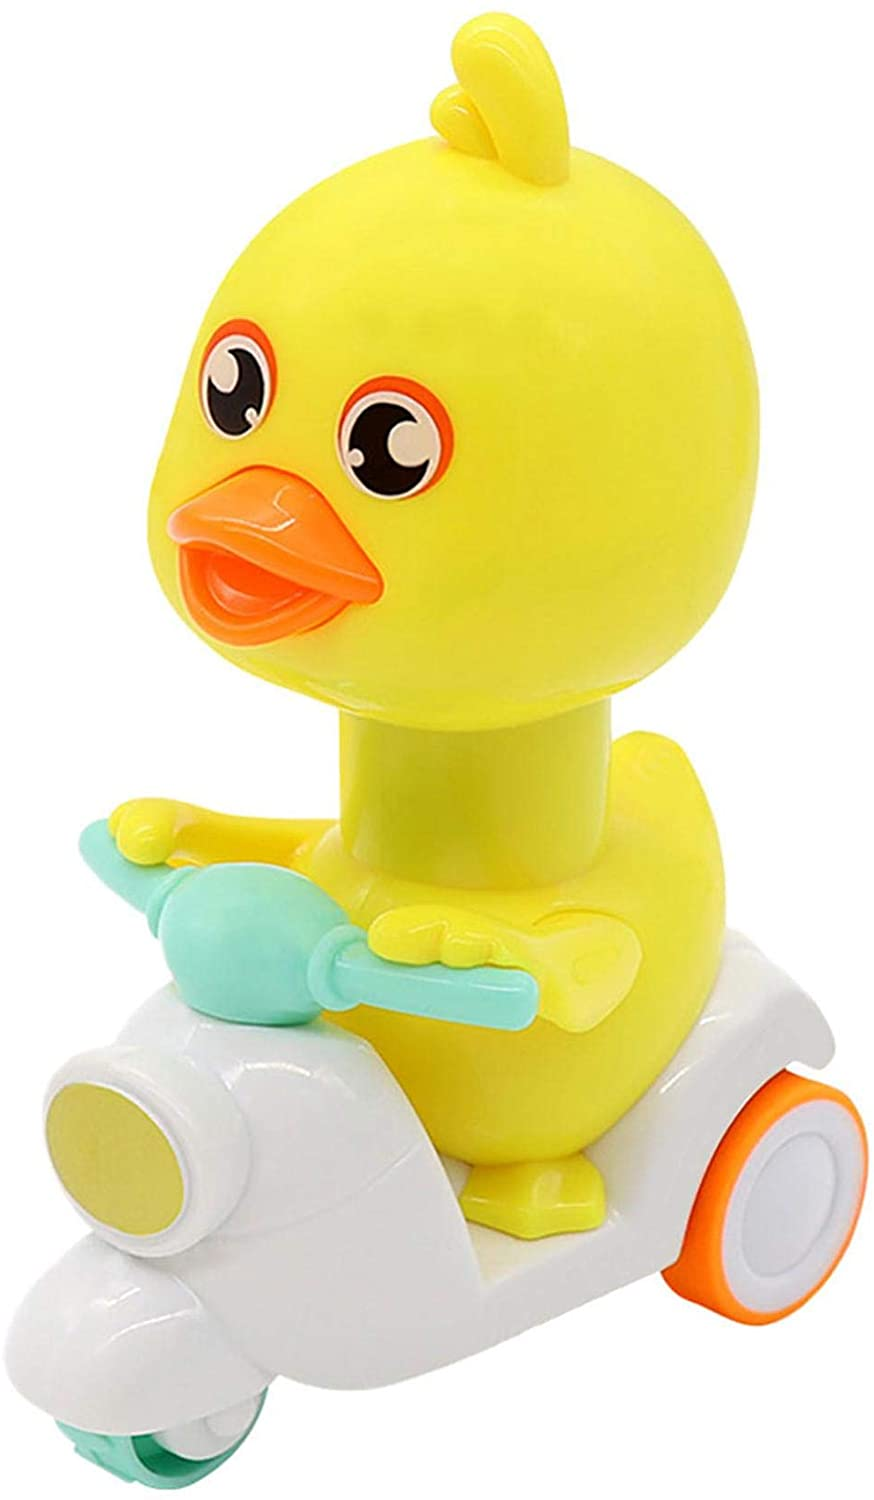 Press Pull Back Cars for Kids - Little Yellow Duck Push and Go Friction Powered Motorcycle, Preschool Christmas Birthday Party Gifts for Boys & Girls - Friction Powered Vehiclels Cars Toy (Green)